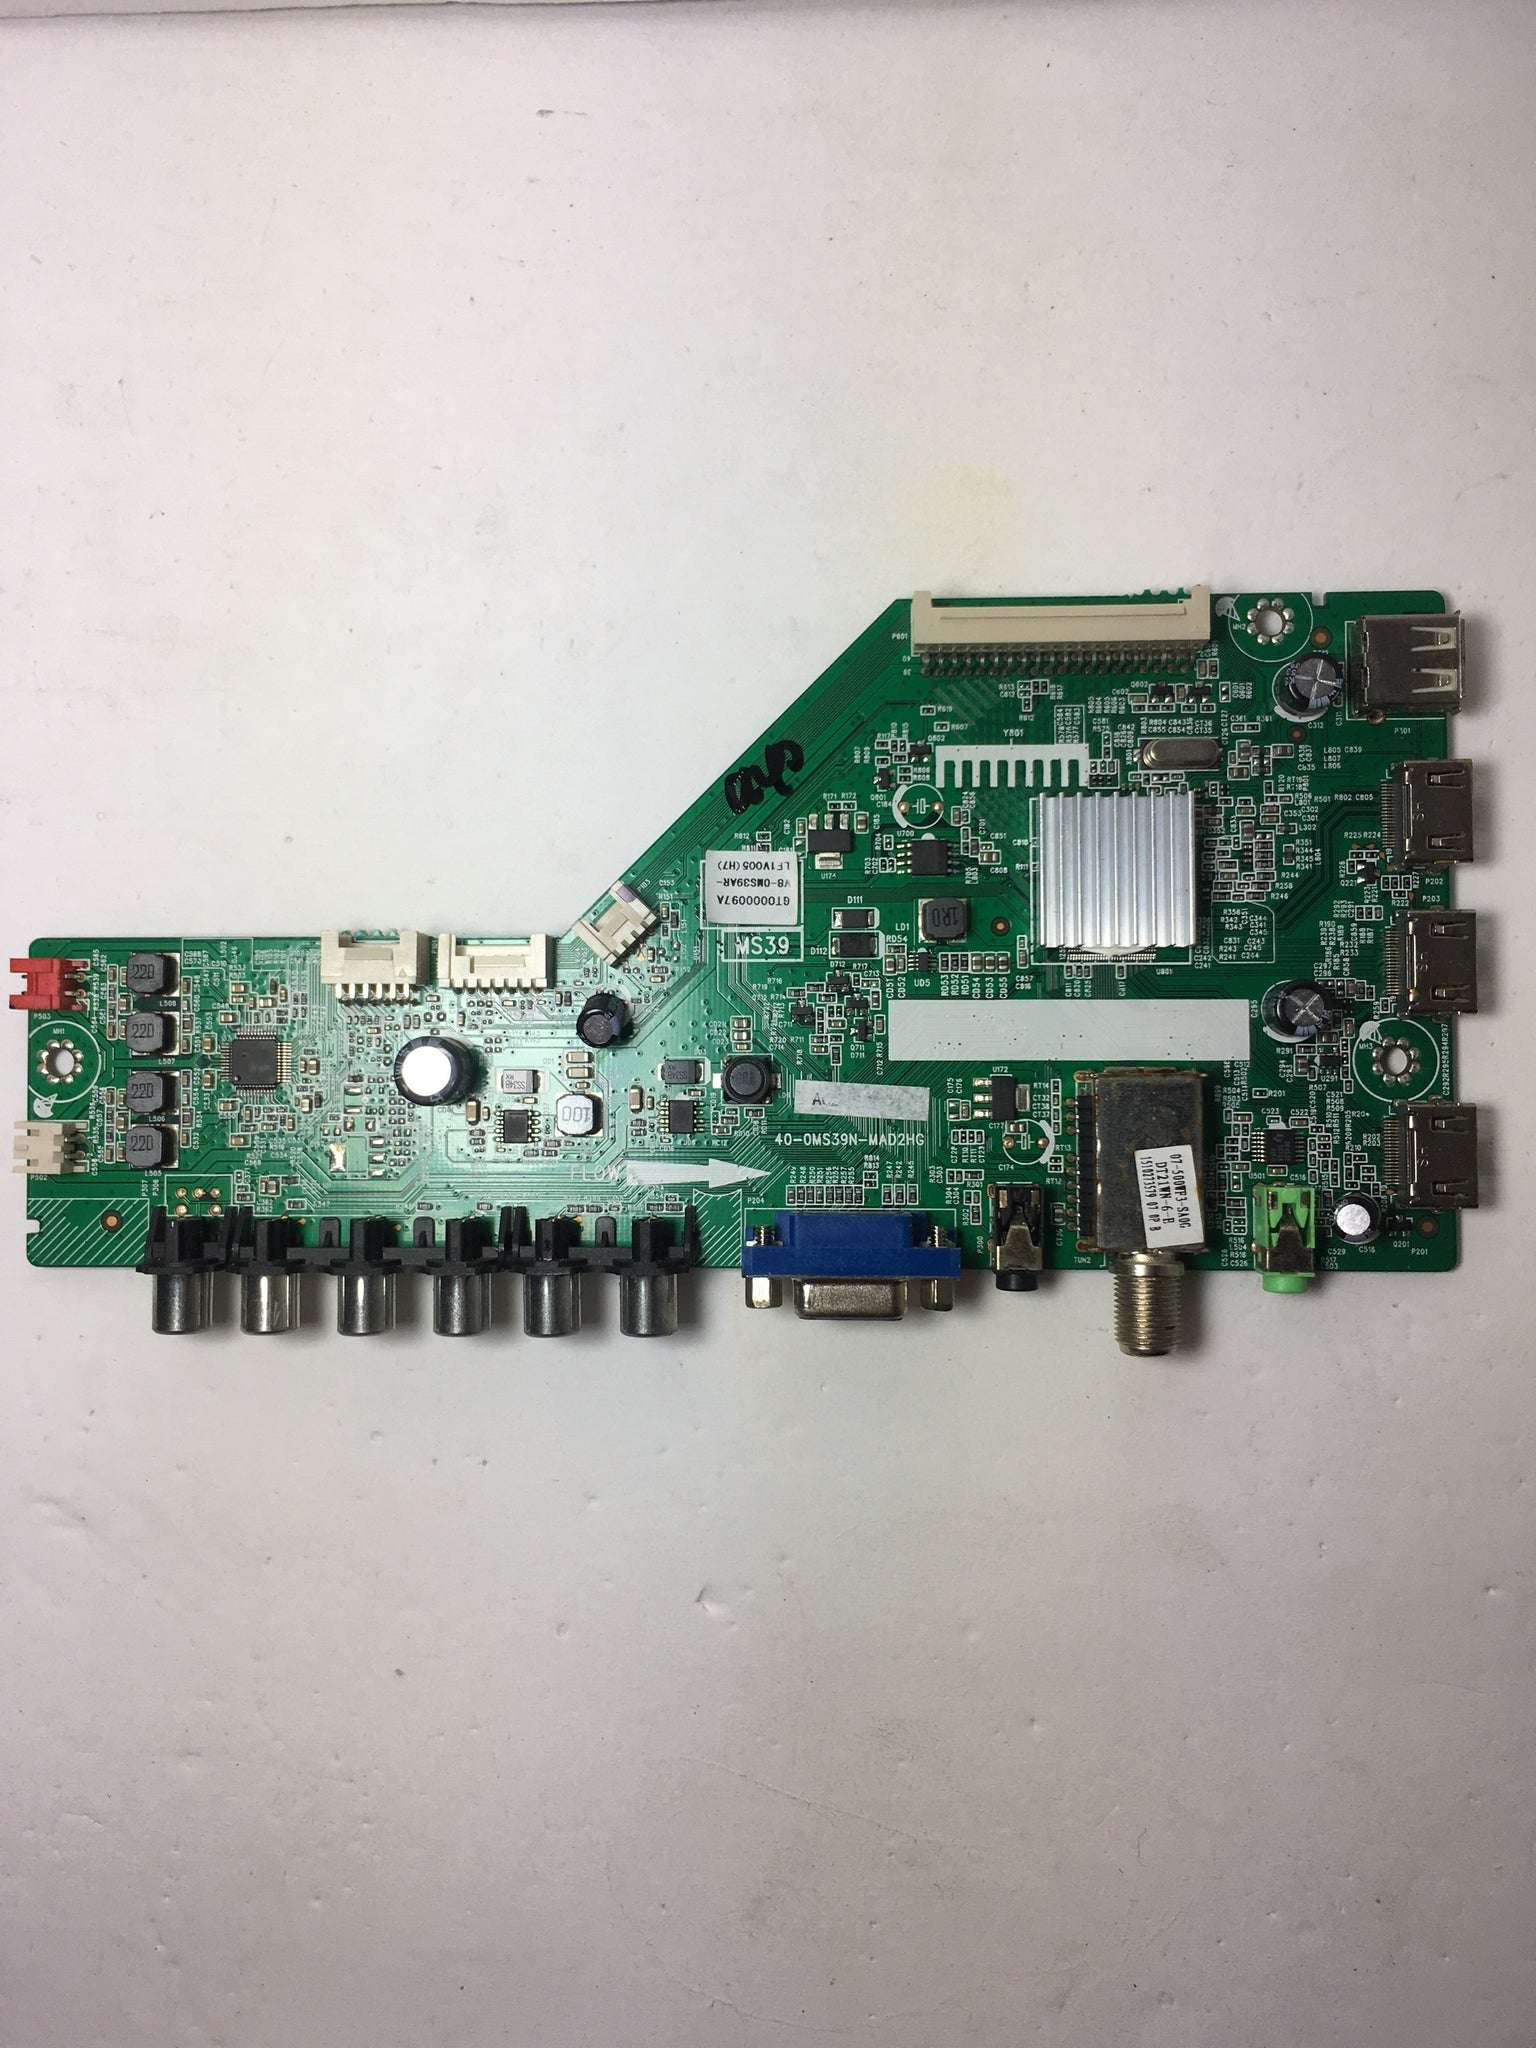 TCL T8-40LAQ2-MA7 Main Board for 40FD2700LBAA